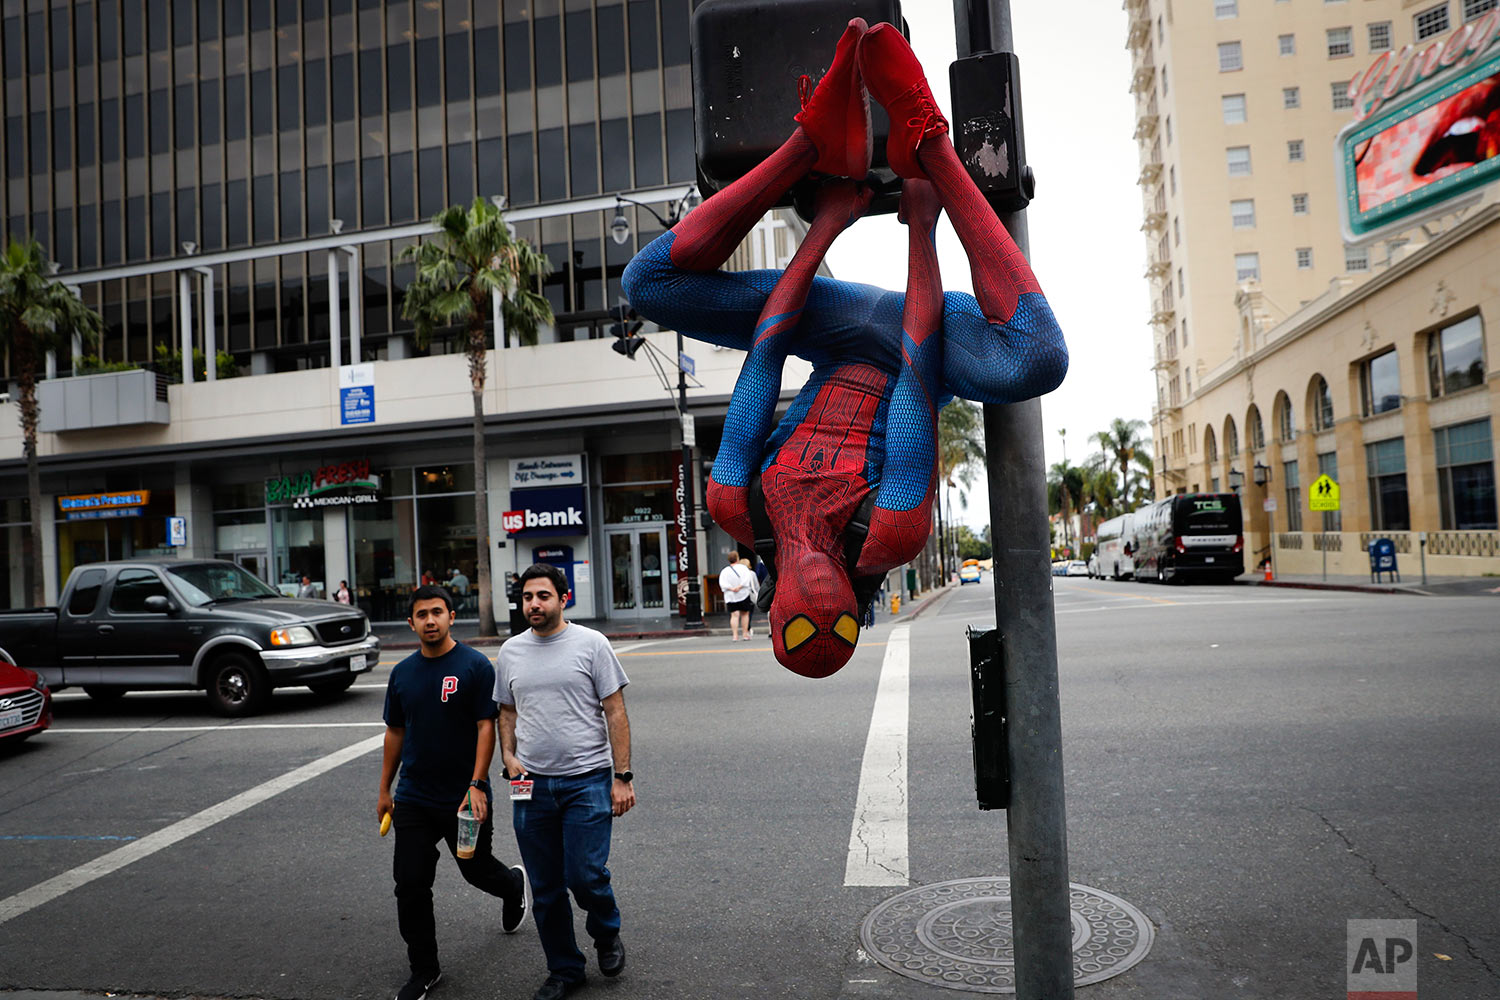 In this Thursday, May 25, 2017 photo, Rashad Rouse, 27, whose dream is getting his star on the Hollywood Walk of Fame, hangs upside down from a traffic signal pole in a Spider-Man costume to get attention from tourists on Hollywood Boulevard, in Los Angeles. Rouse is a musician and sometimes works as an Uber driver when he is not working on the boulevard. (AP Photo/Jae C. Hong)